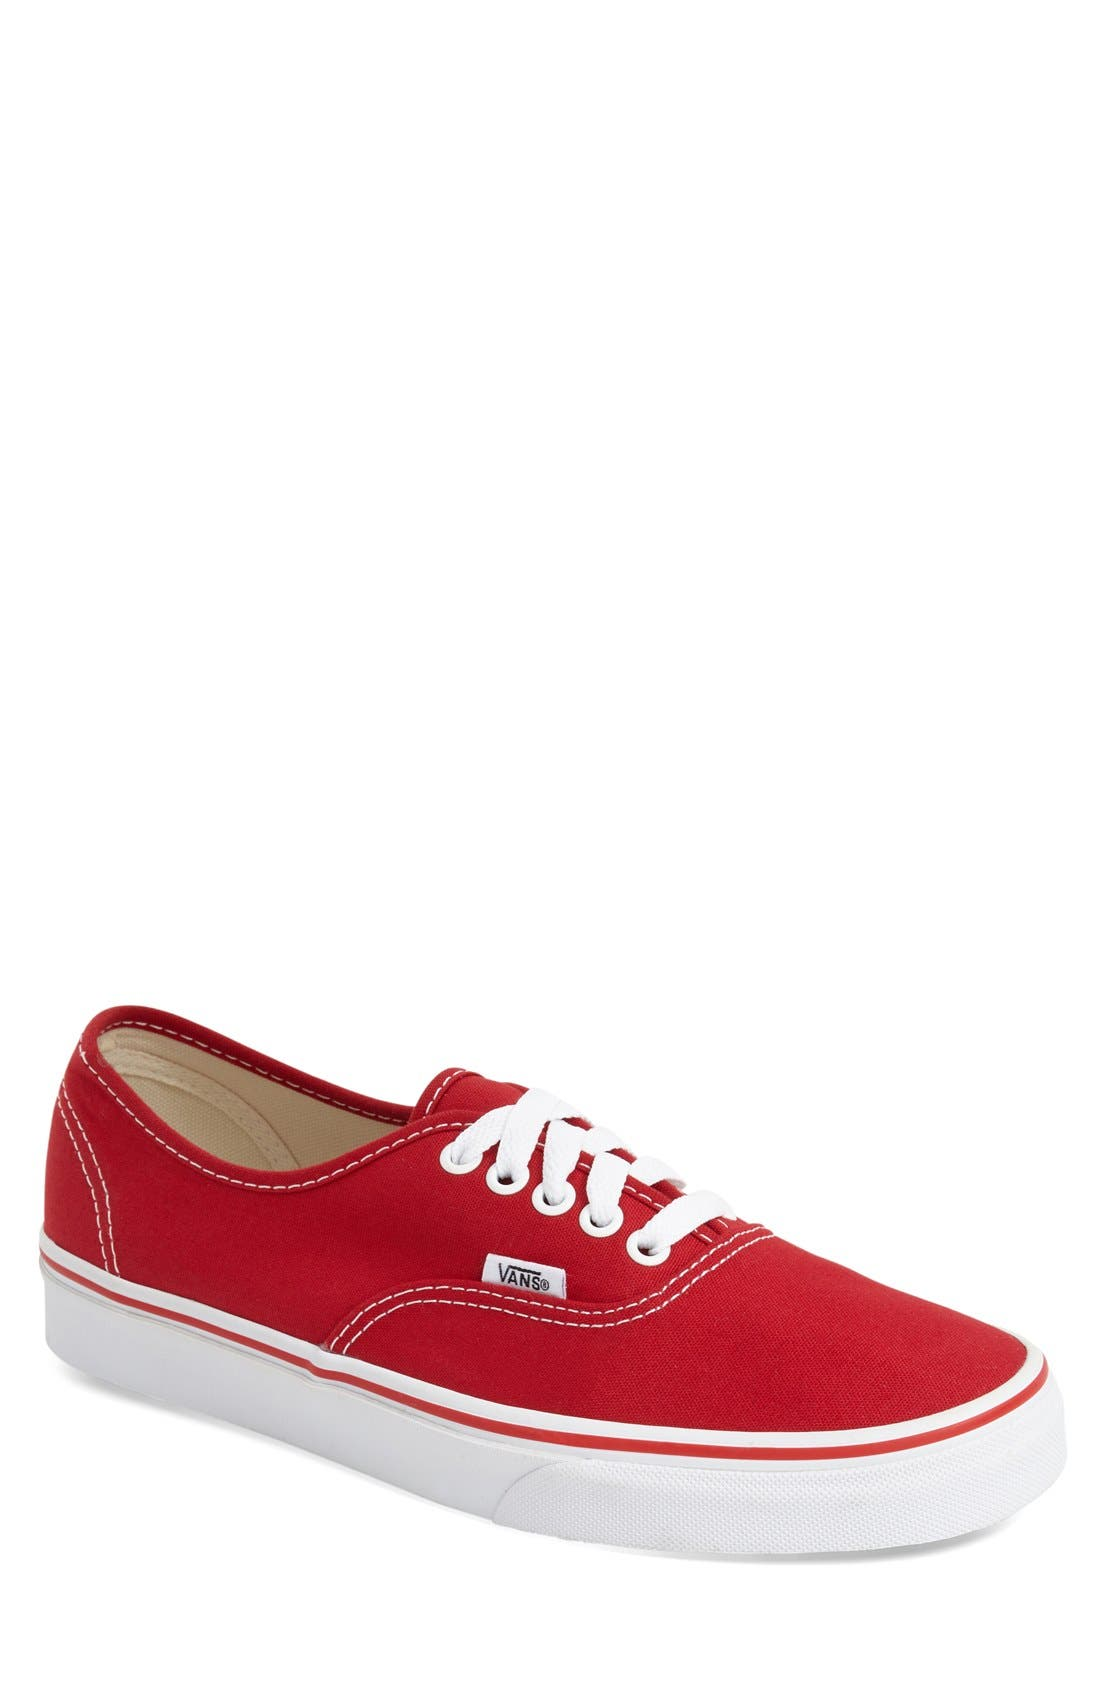 'Authentic' Sneaker,                             Main thumbnail 1, color,                             Red